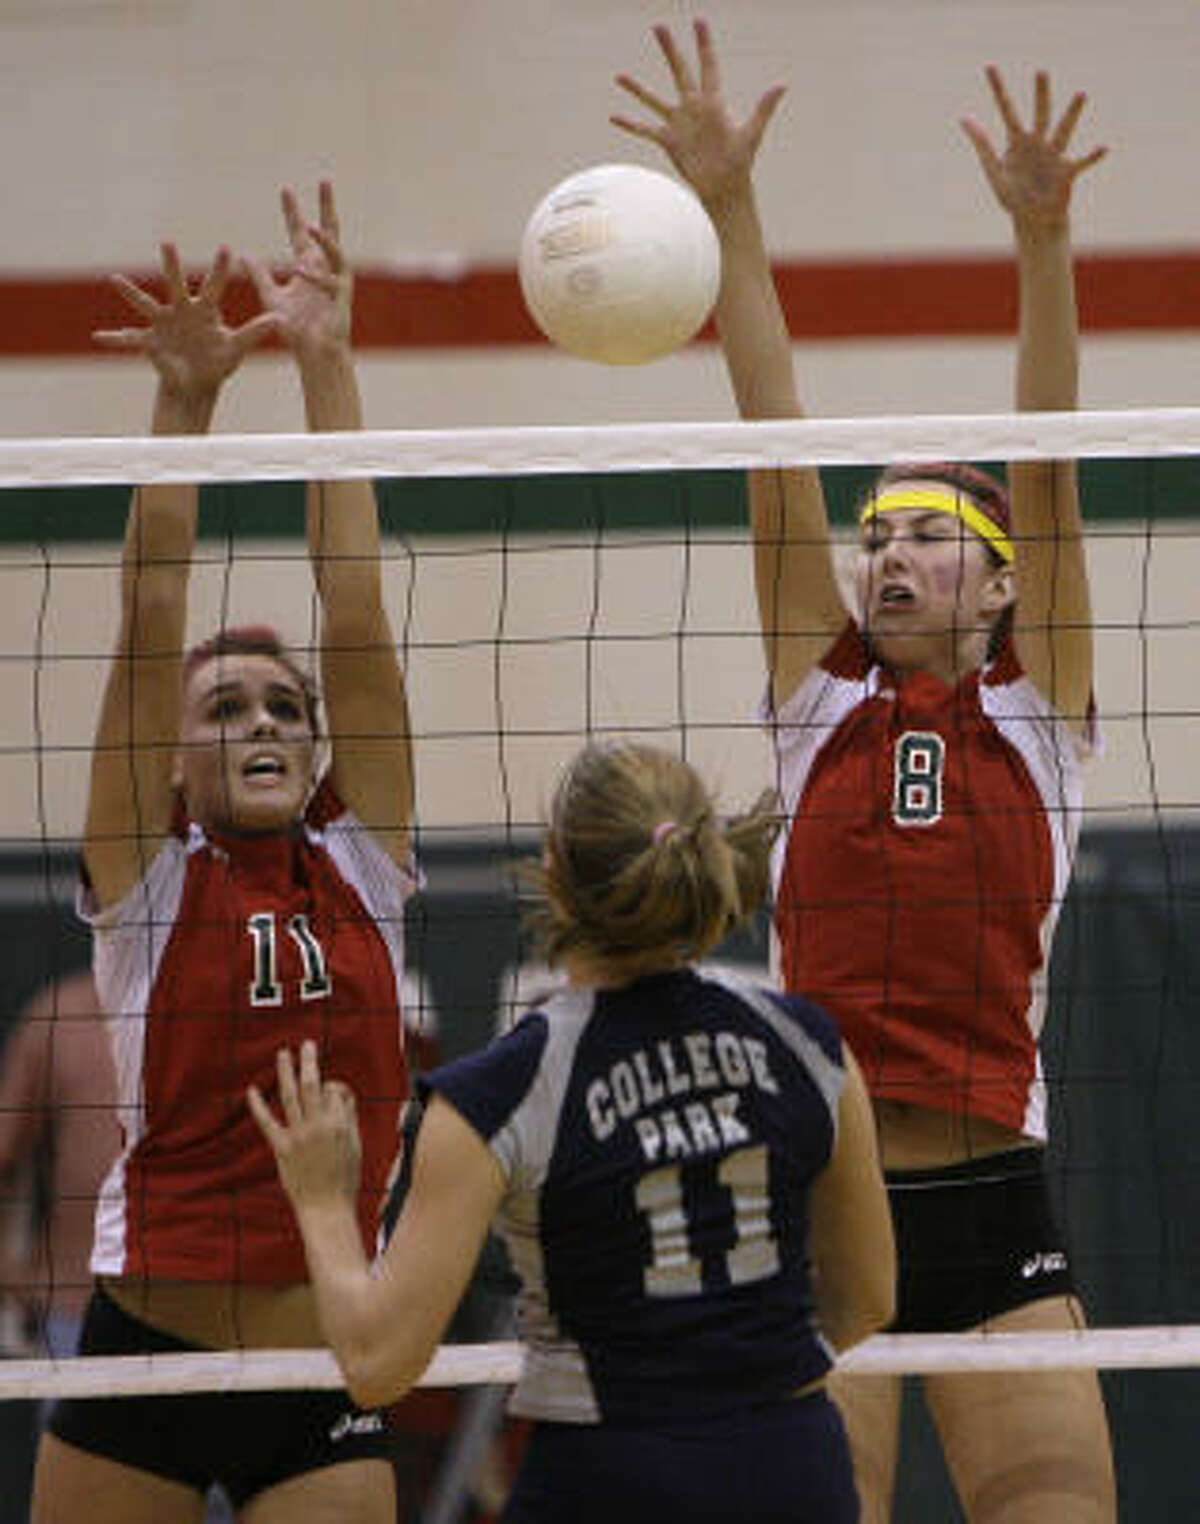 The Woodlands's Sarah Sanchez, left, and Katie Messing go up to block a shot by Abby Mayer.